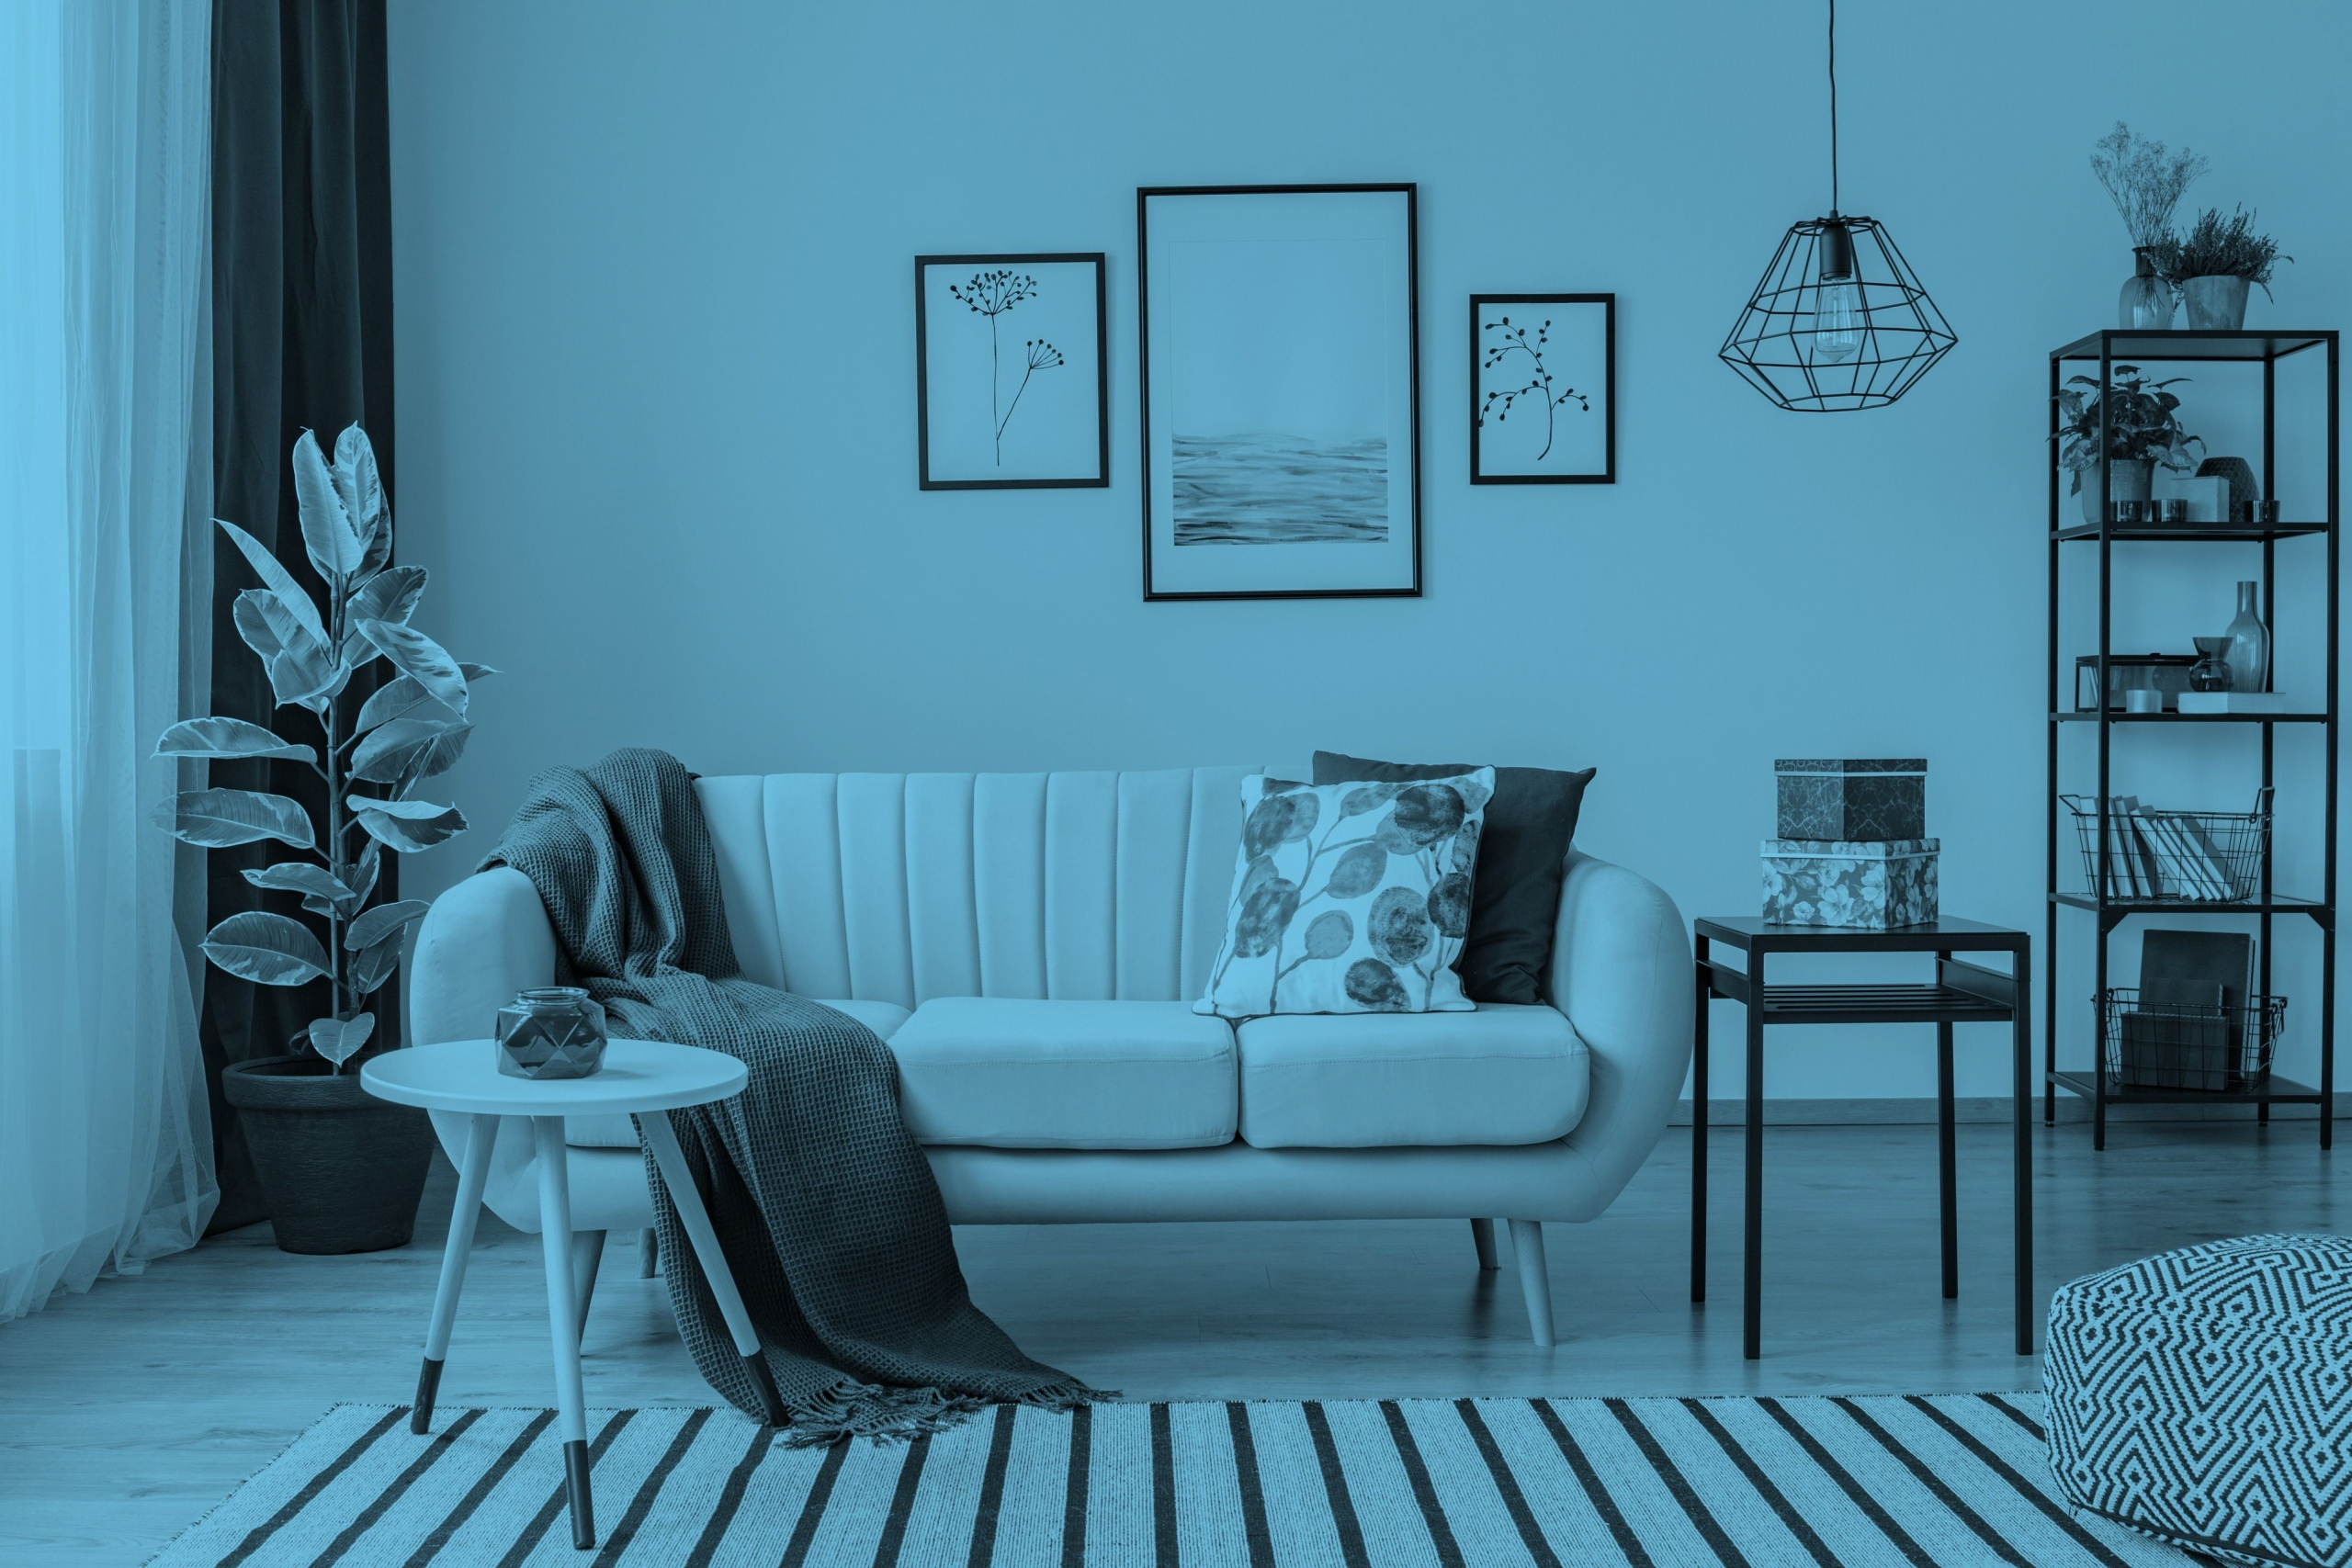 value proposition and short-term rentals